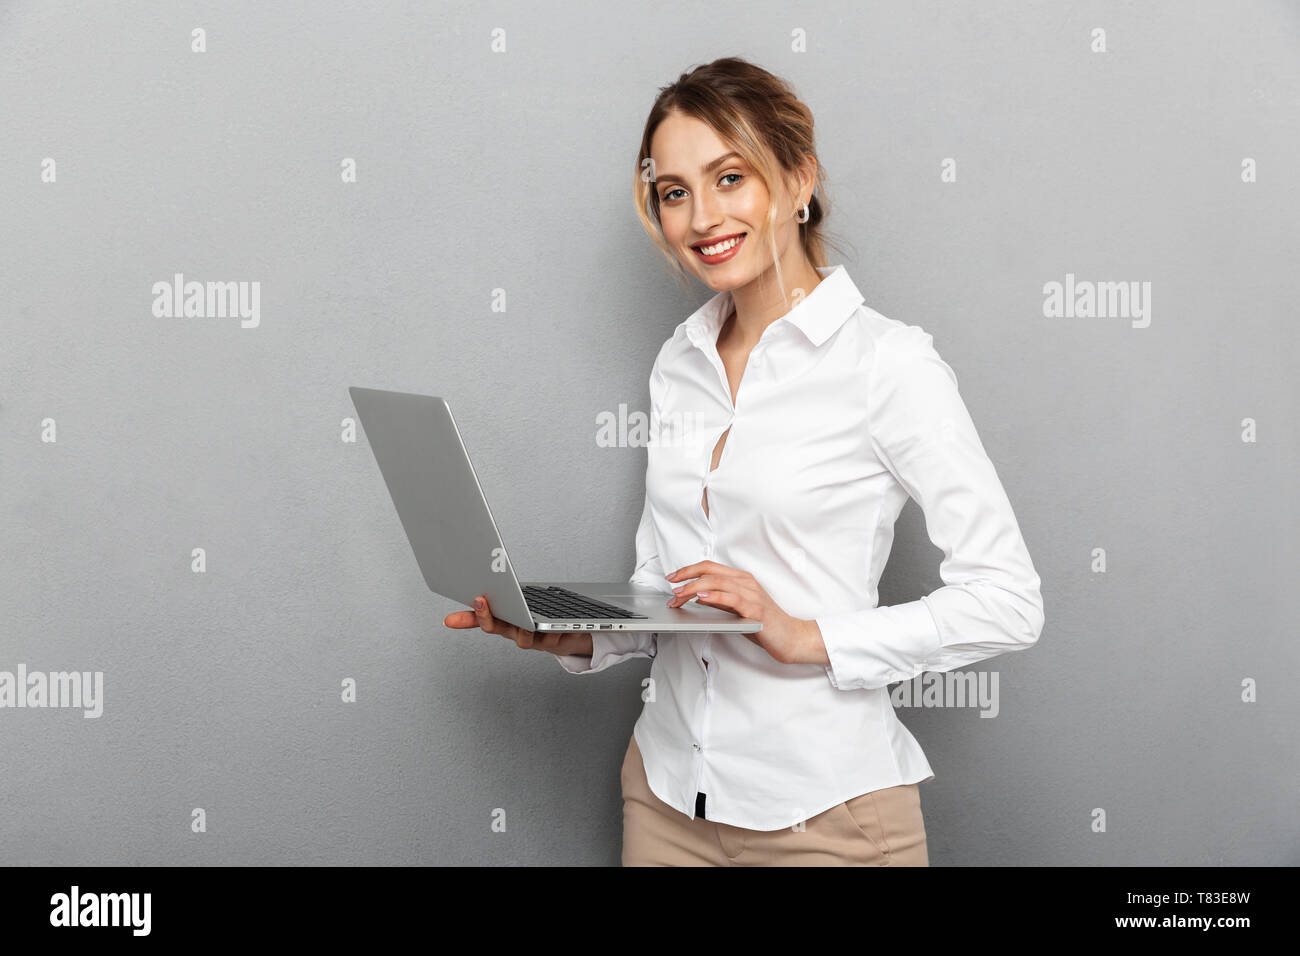 Photo of smart woman in formal wear standing and holding laptop in the office isolated over gray background Stock Photo